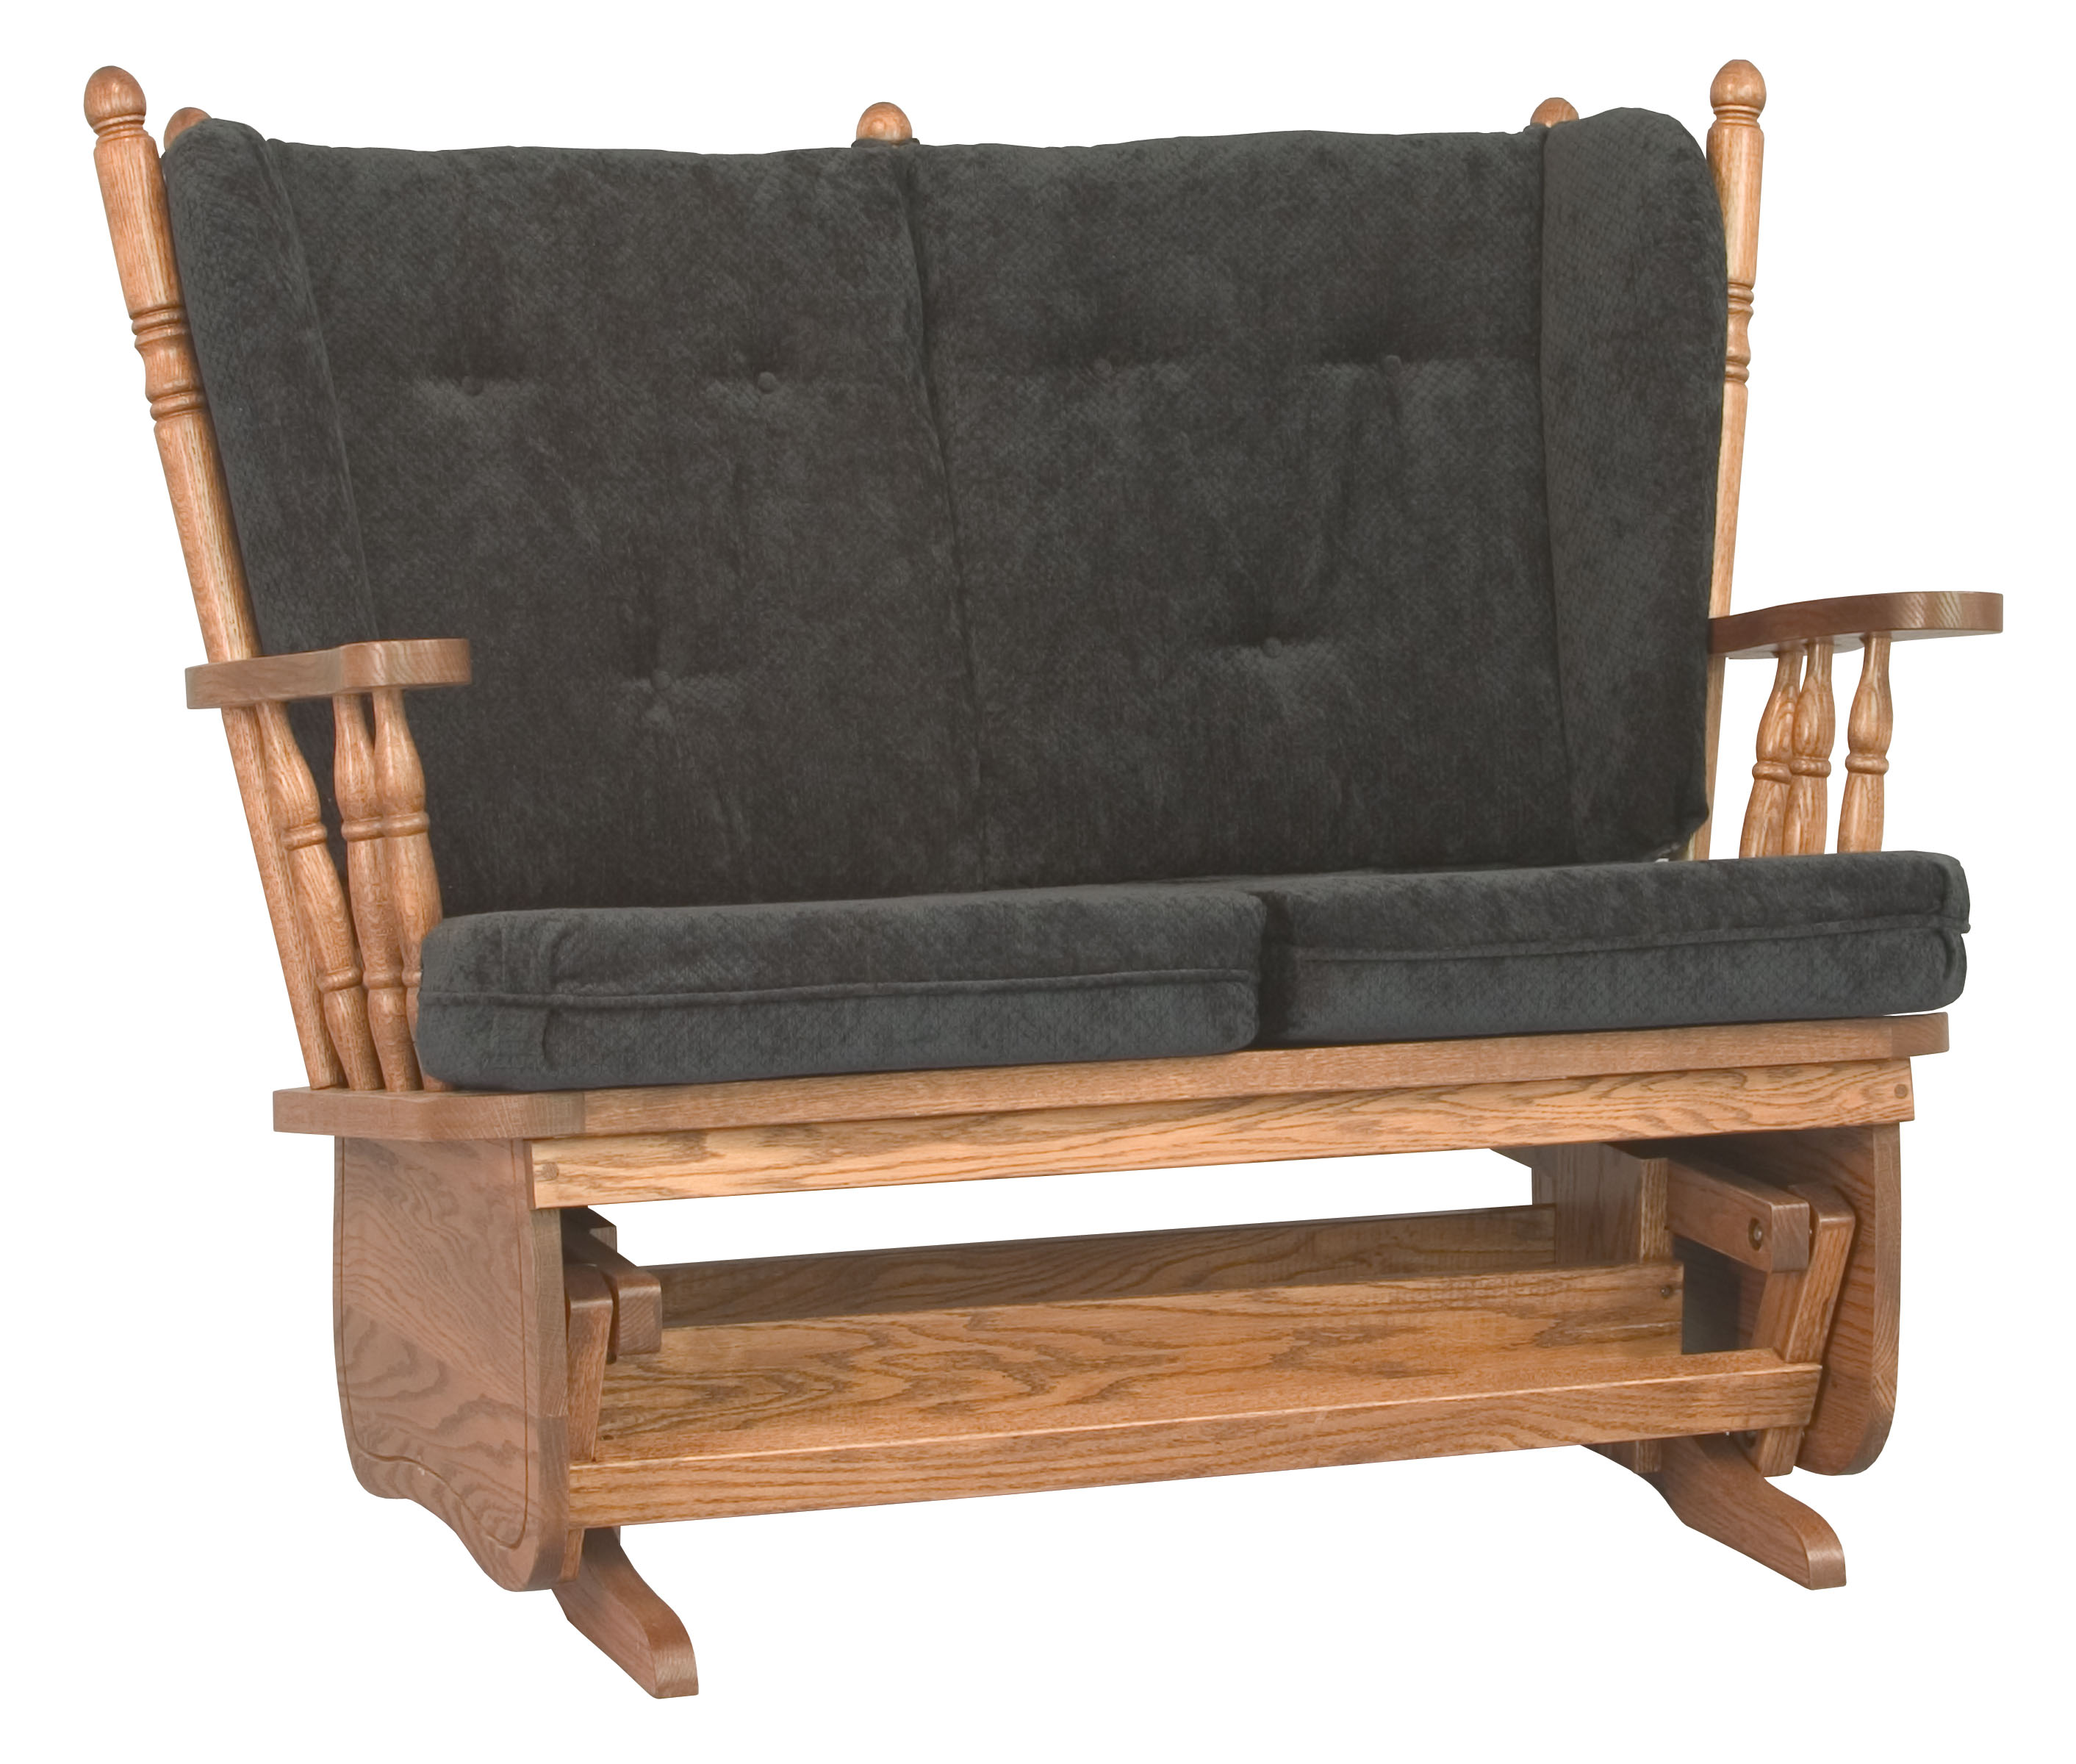 4 Post Loveseat Glider Hardwood Creations